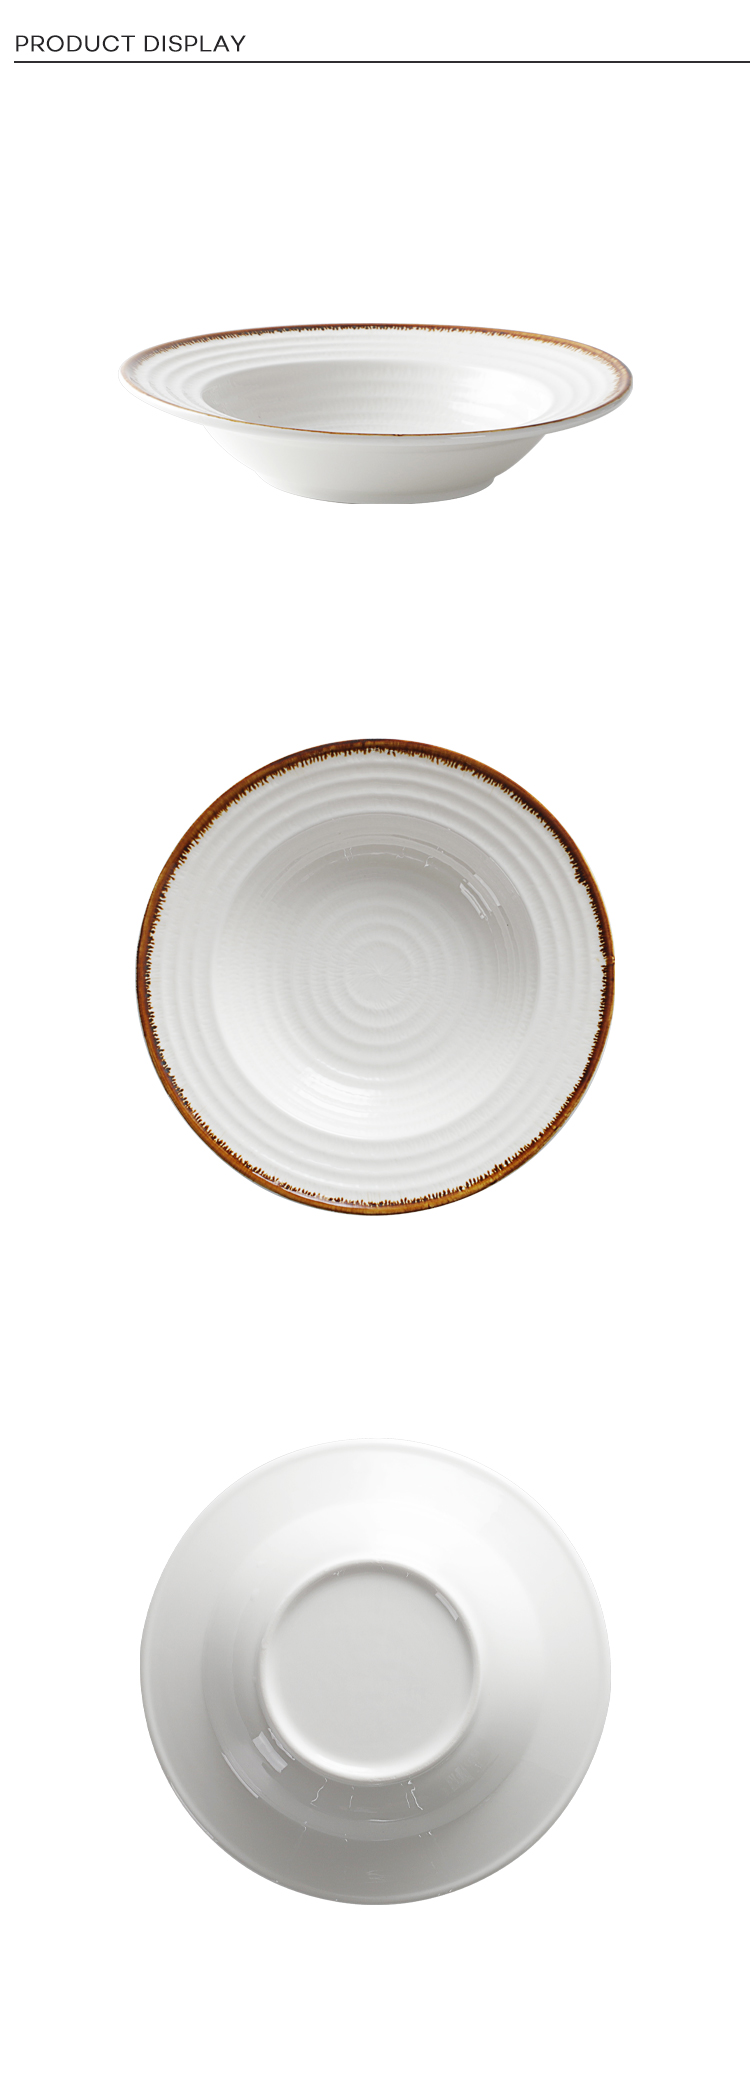 Wholesale Chaozhou Heat Resistant Restaurant Salad Plate,  Catering Serving Soup Dishes, Ceramic Spaghetti Plate&